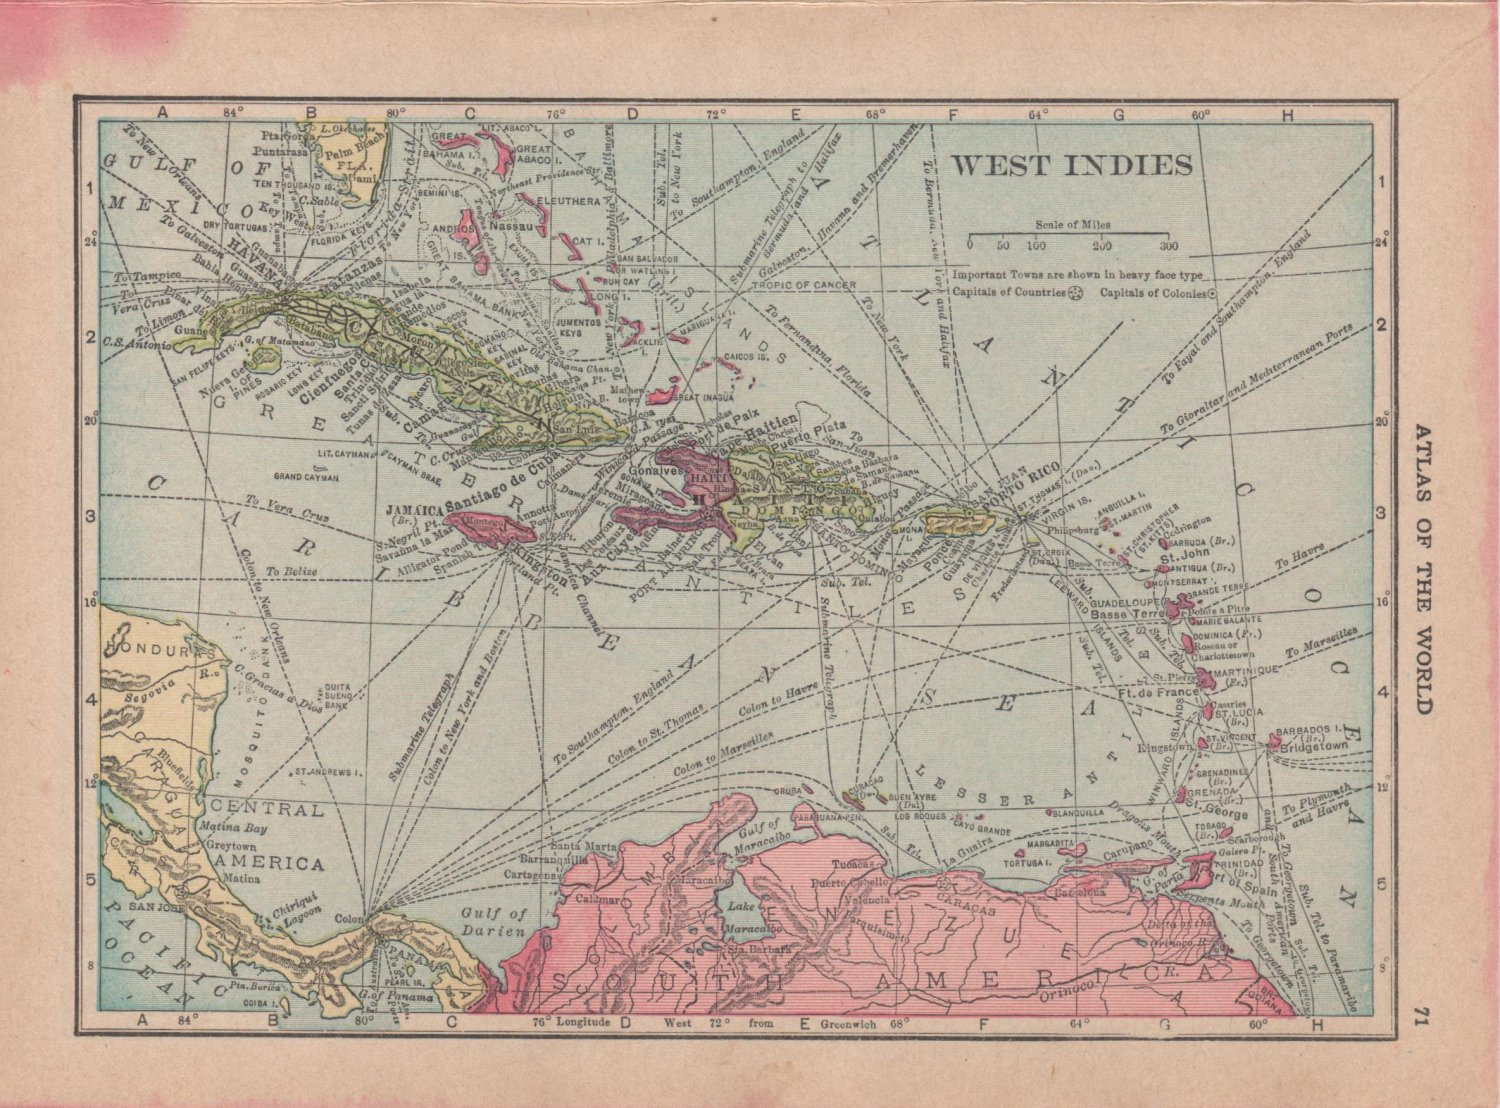 Map of Cuba and The West Indies, C.S. Hammond c.1910